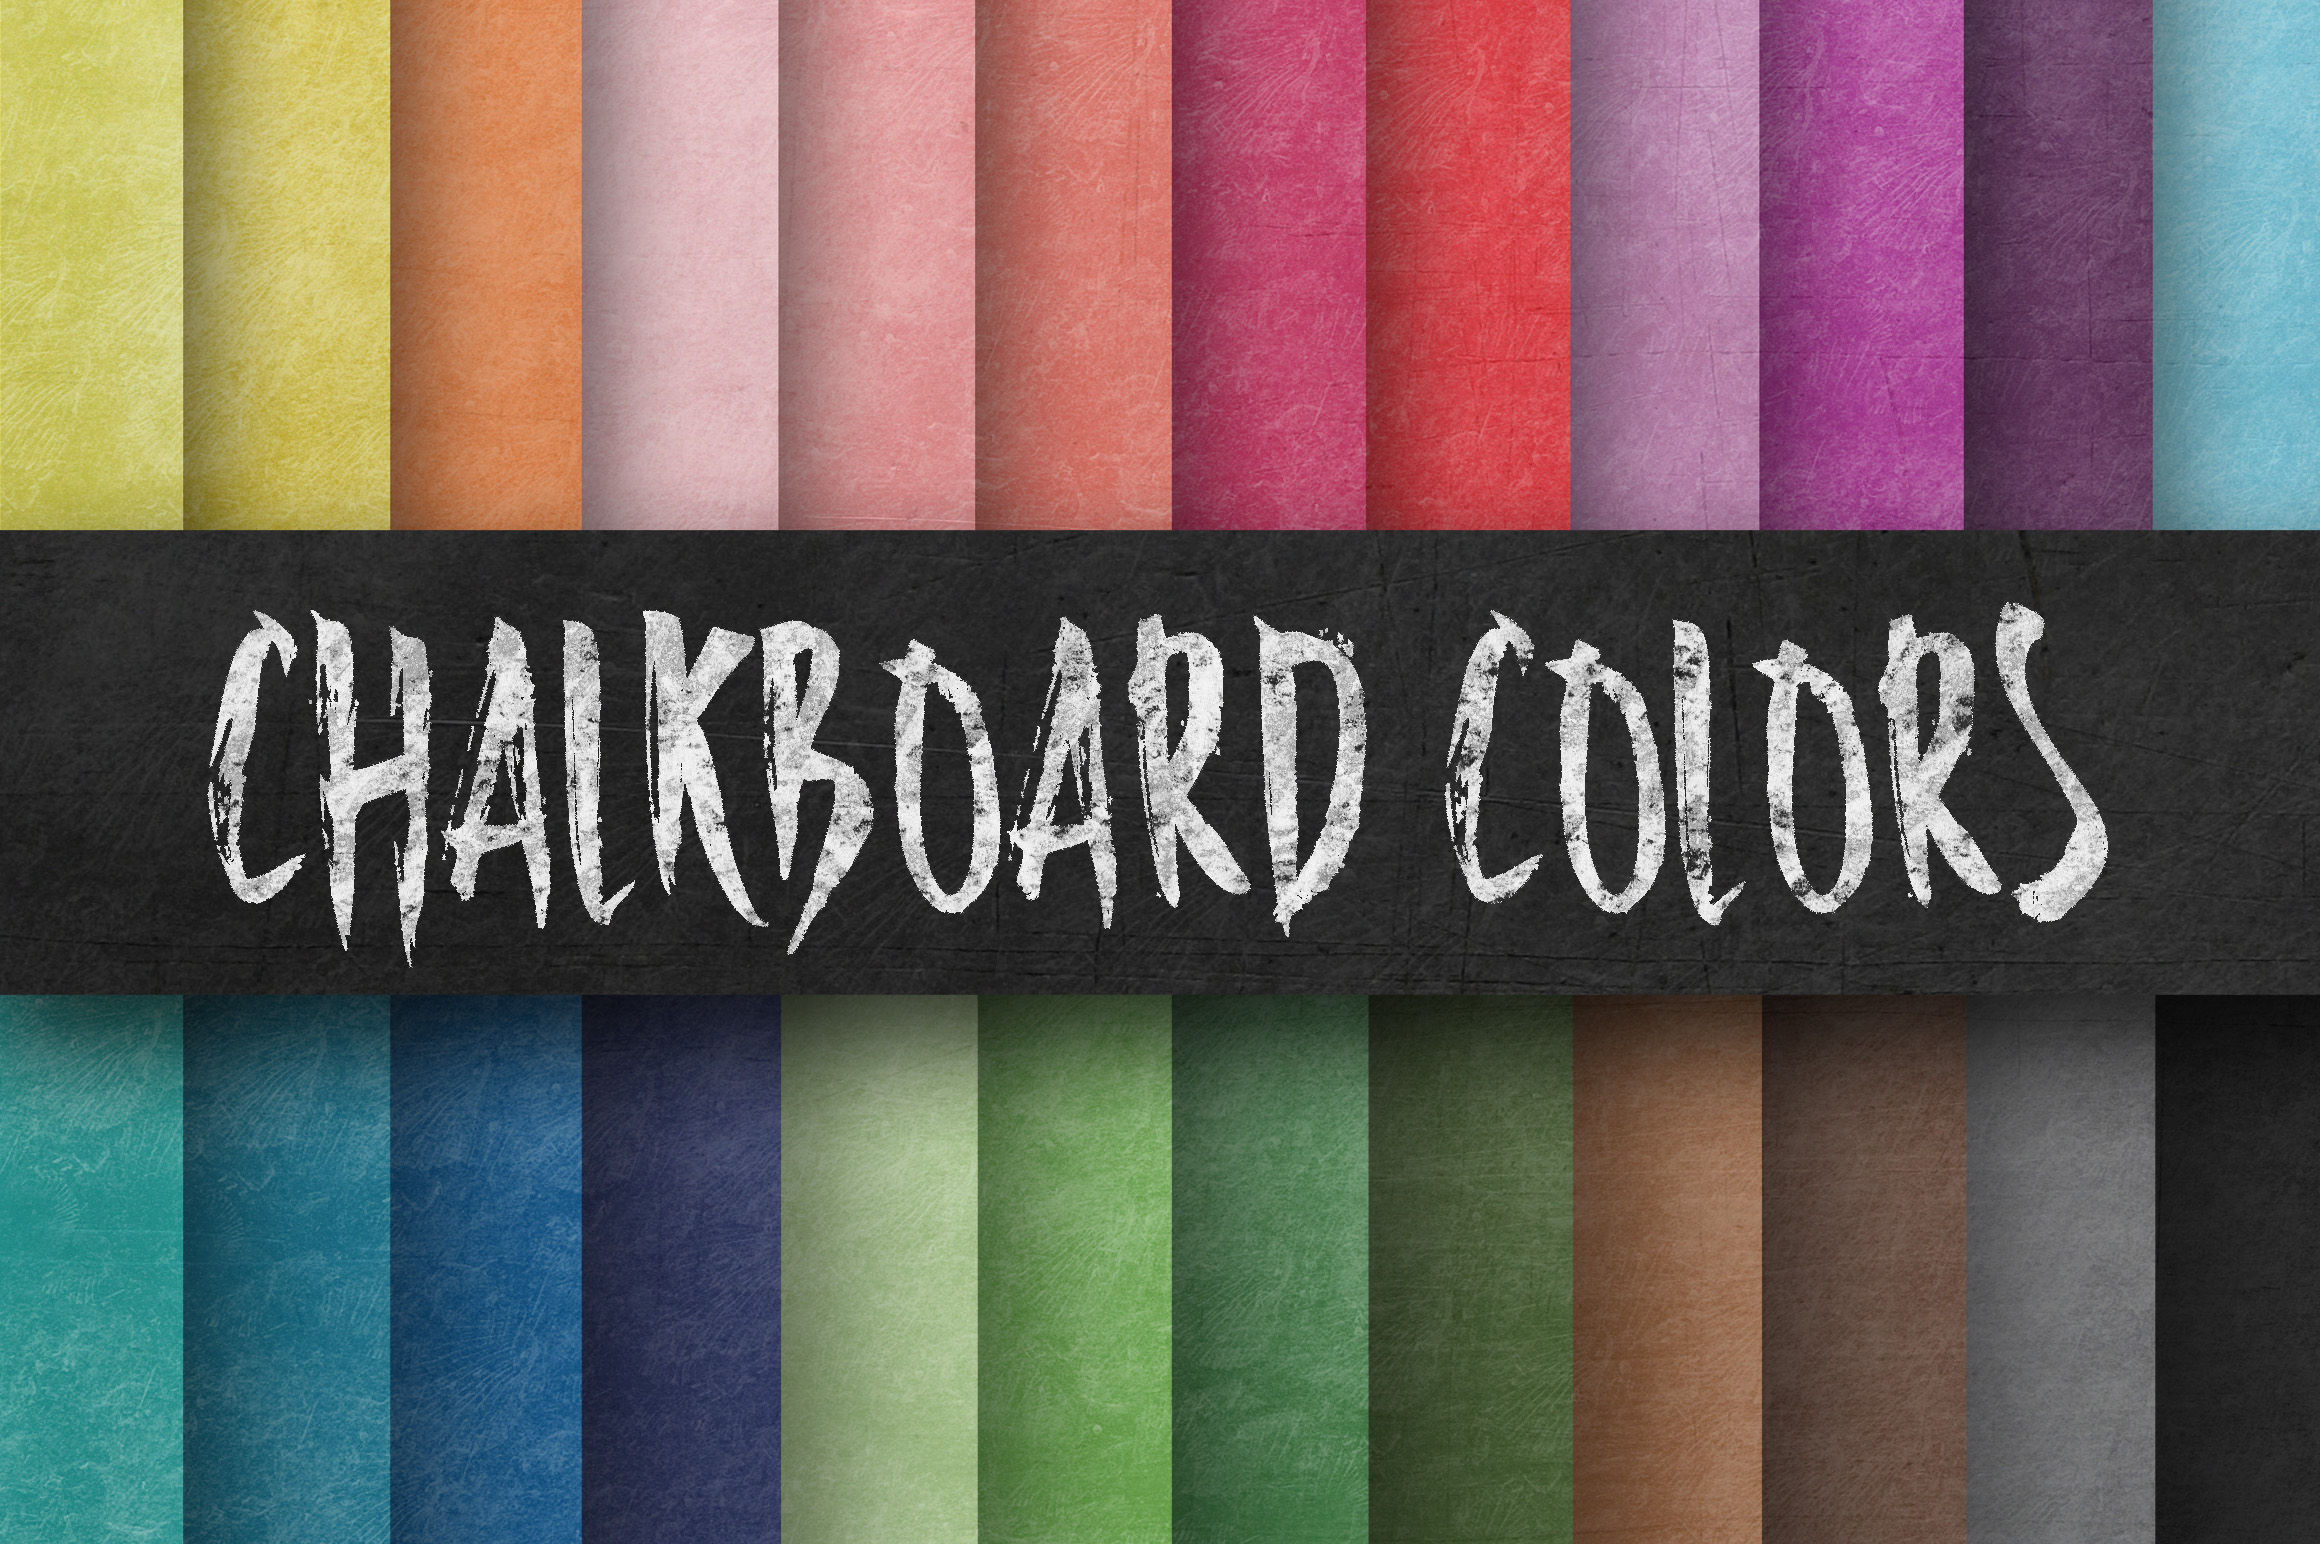 Colorful Chalkboard Paper Textures Digital Paper Graphic By oldmarketdesigns